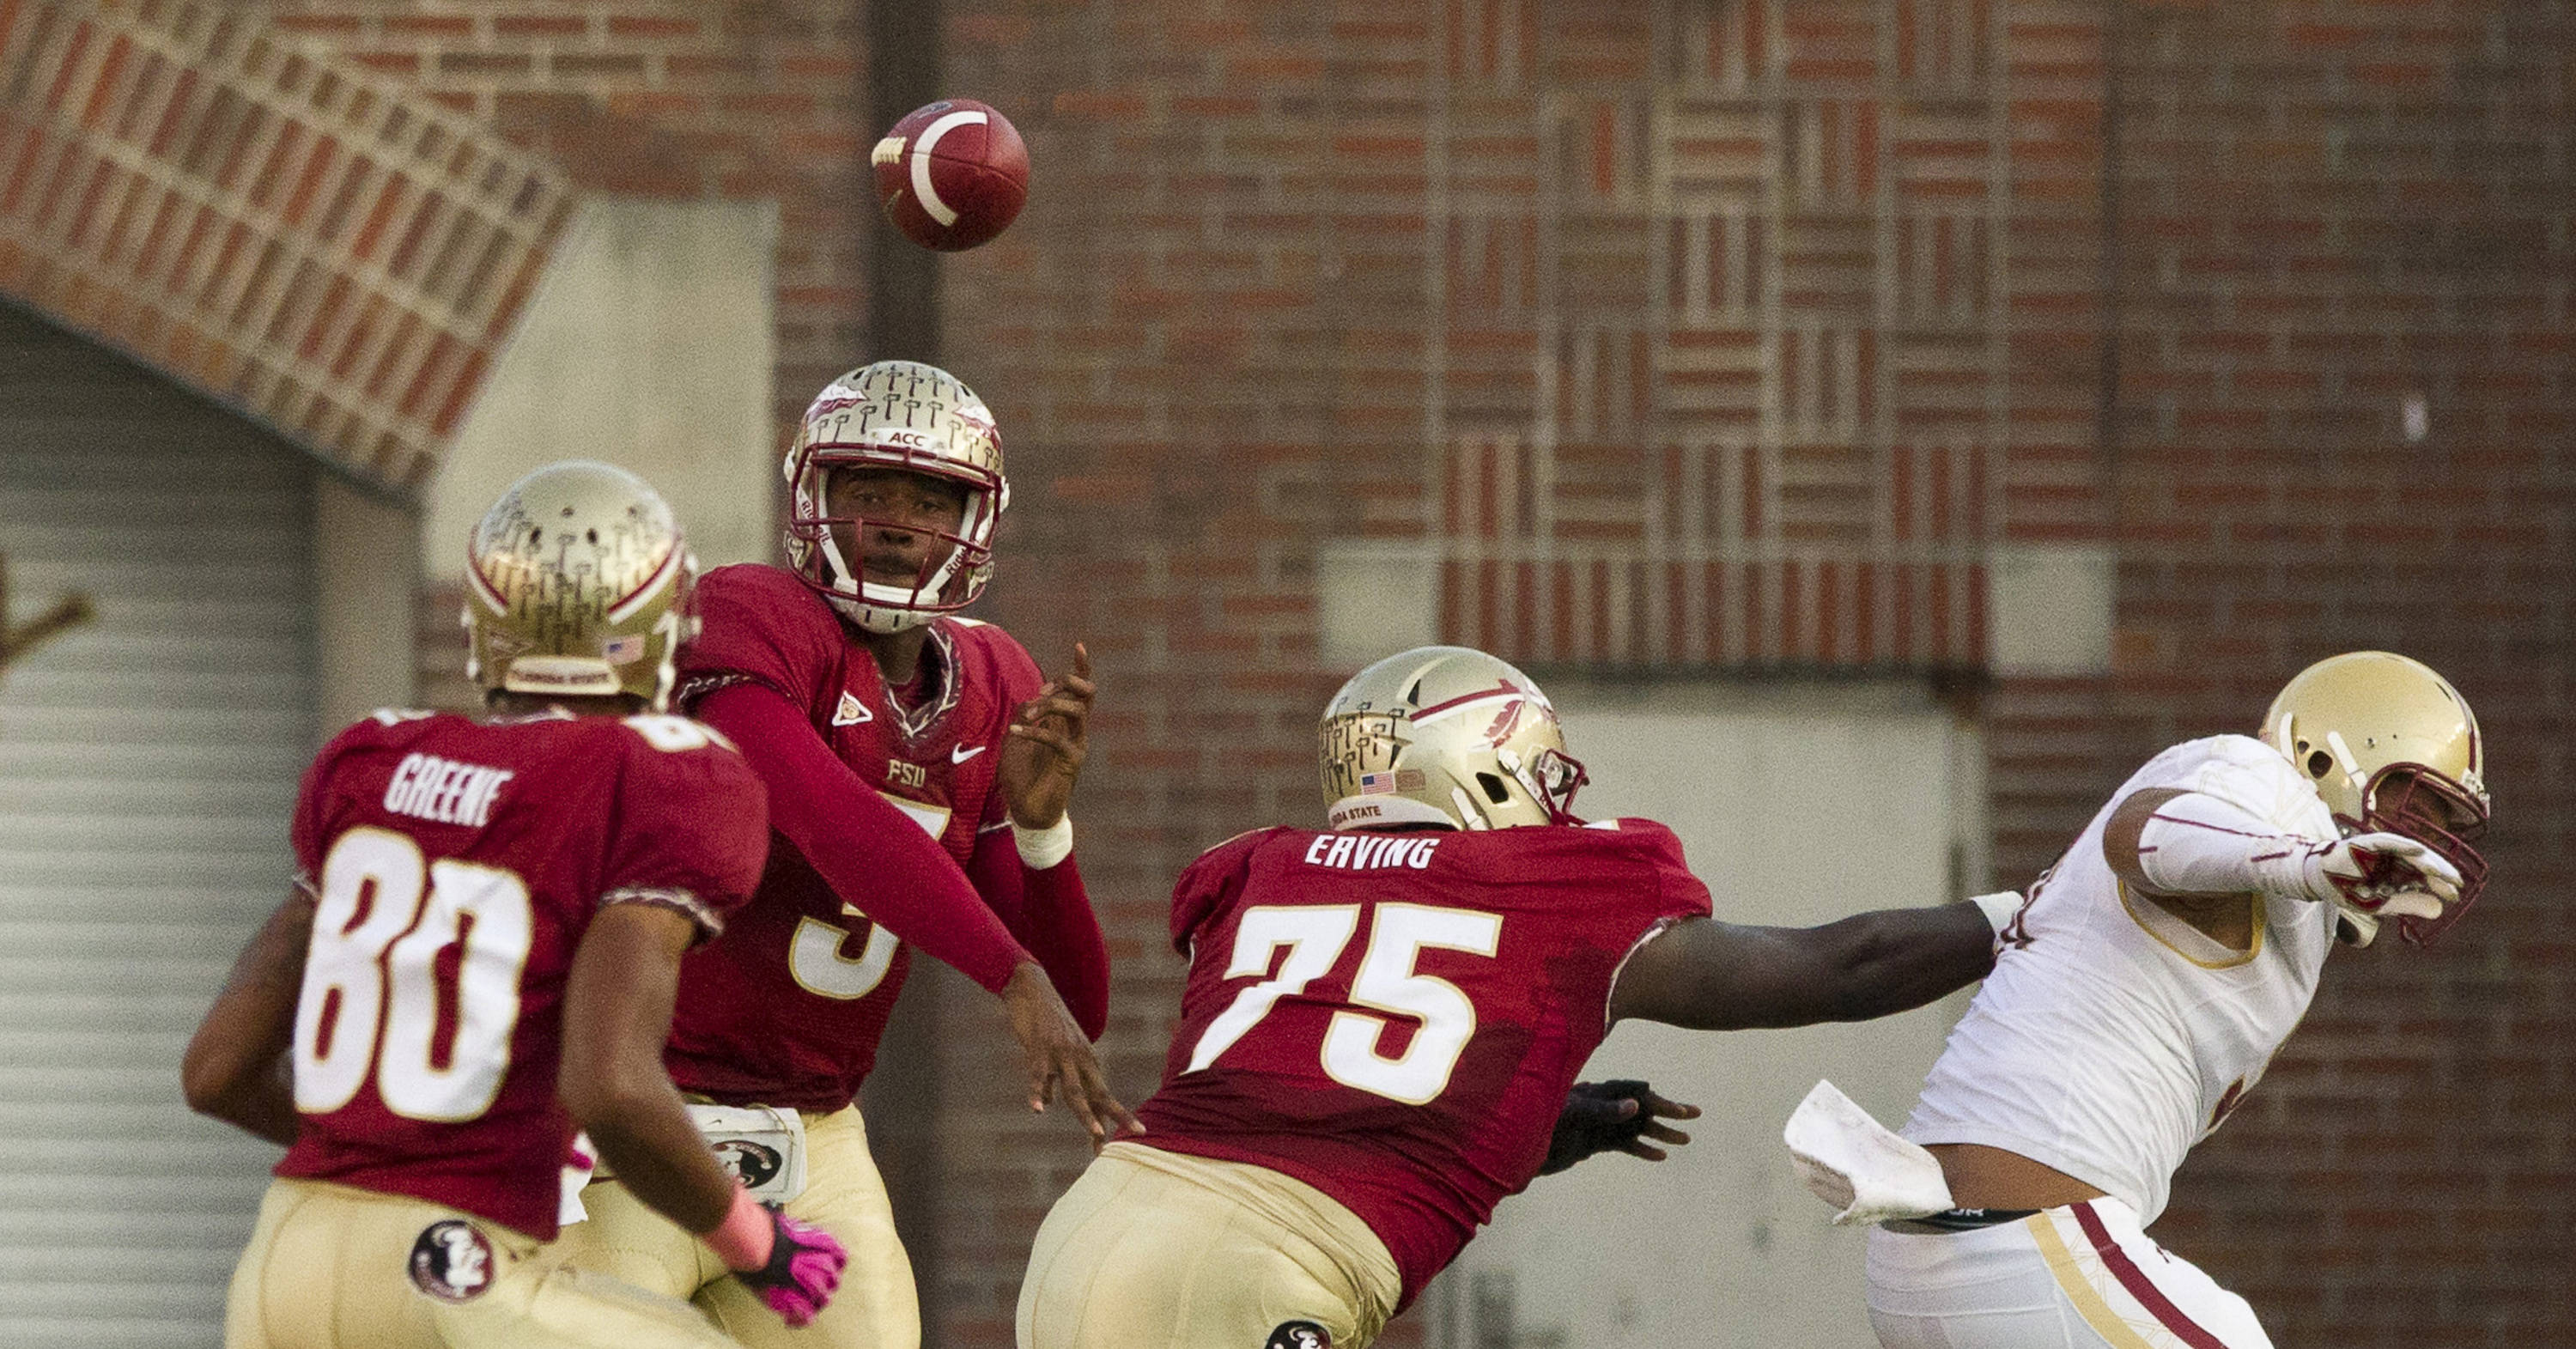 EJ Manuel (3) throws a pass during the FSU vs Boston College football game on October 13, 2012 in Tallahassee, Fla.